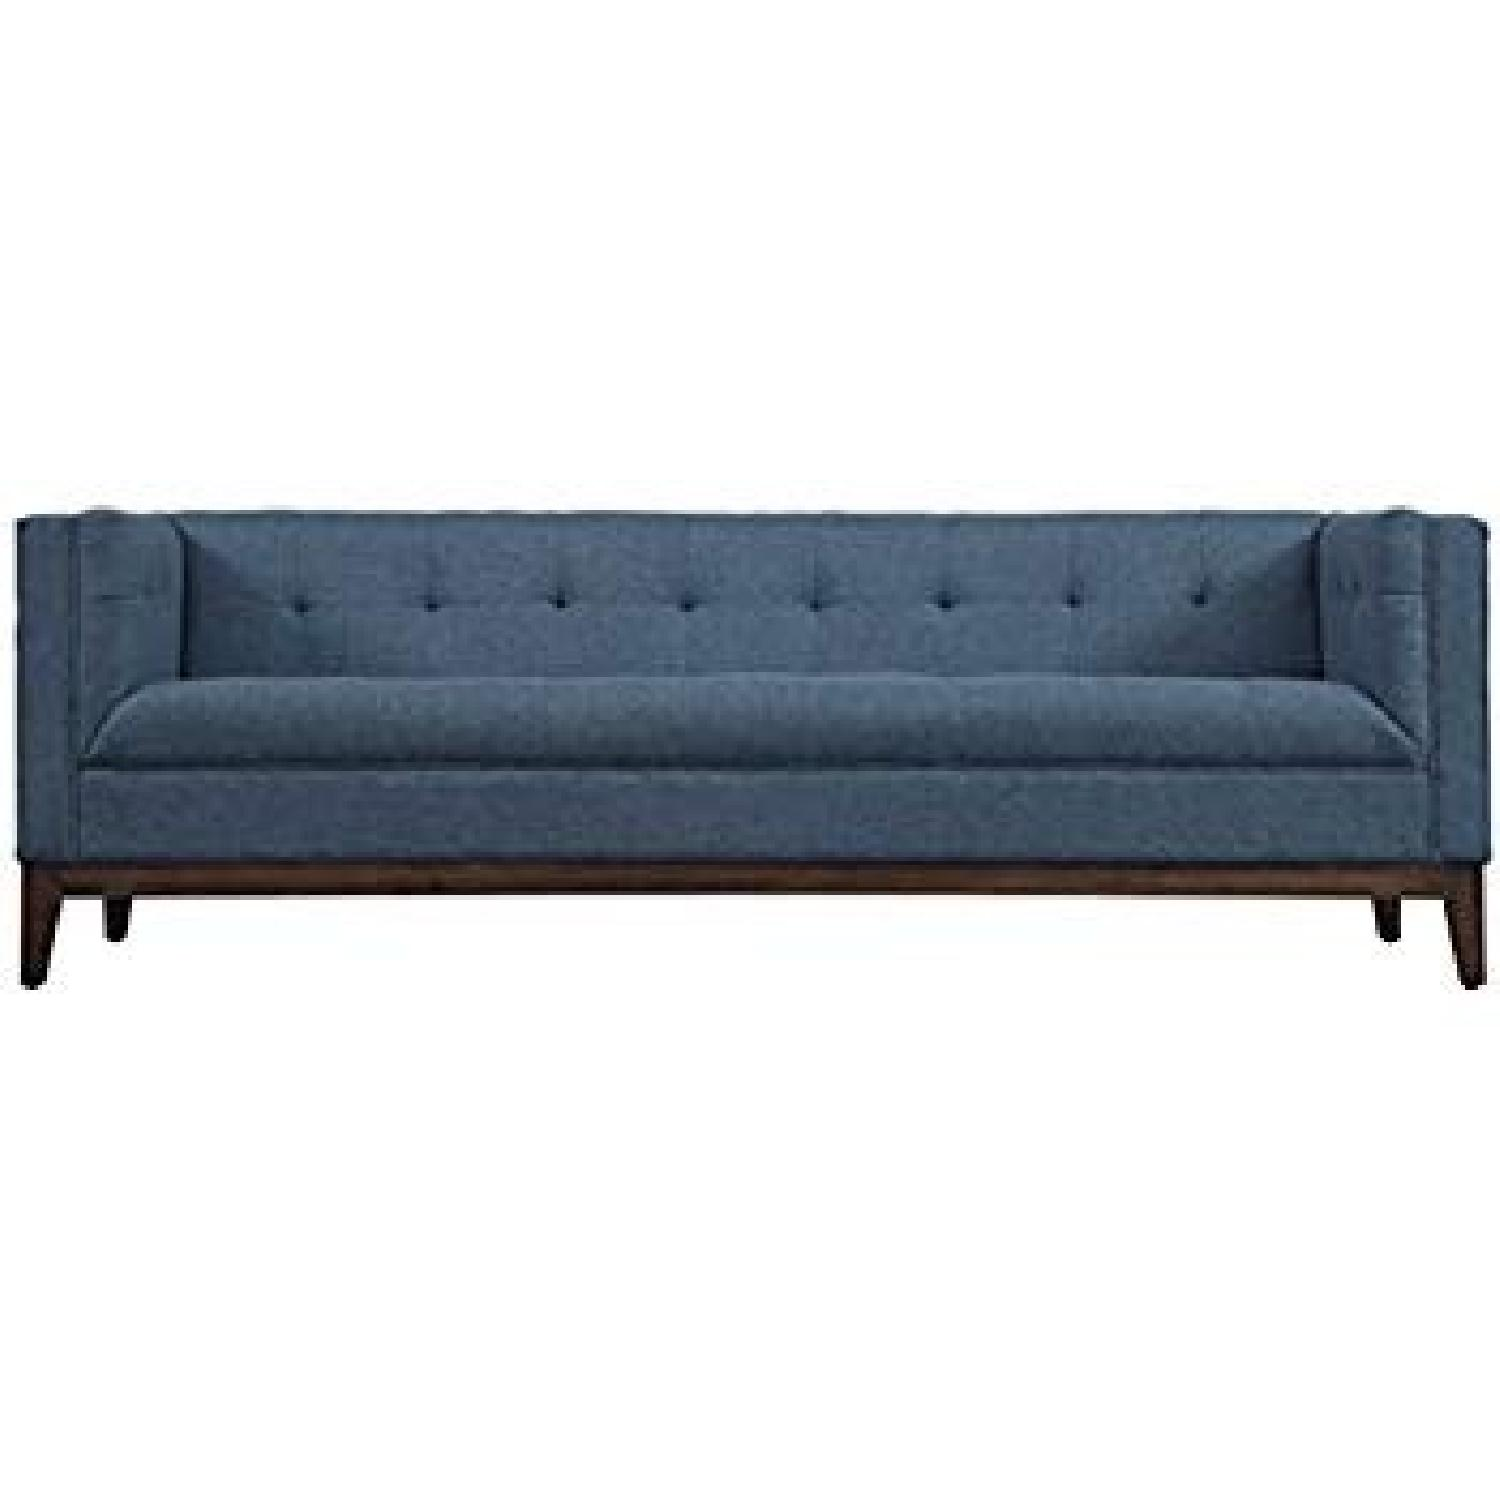 TOV Furniture Gavin Mid-Century Modern Fabric Sofa